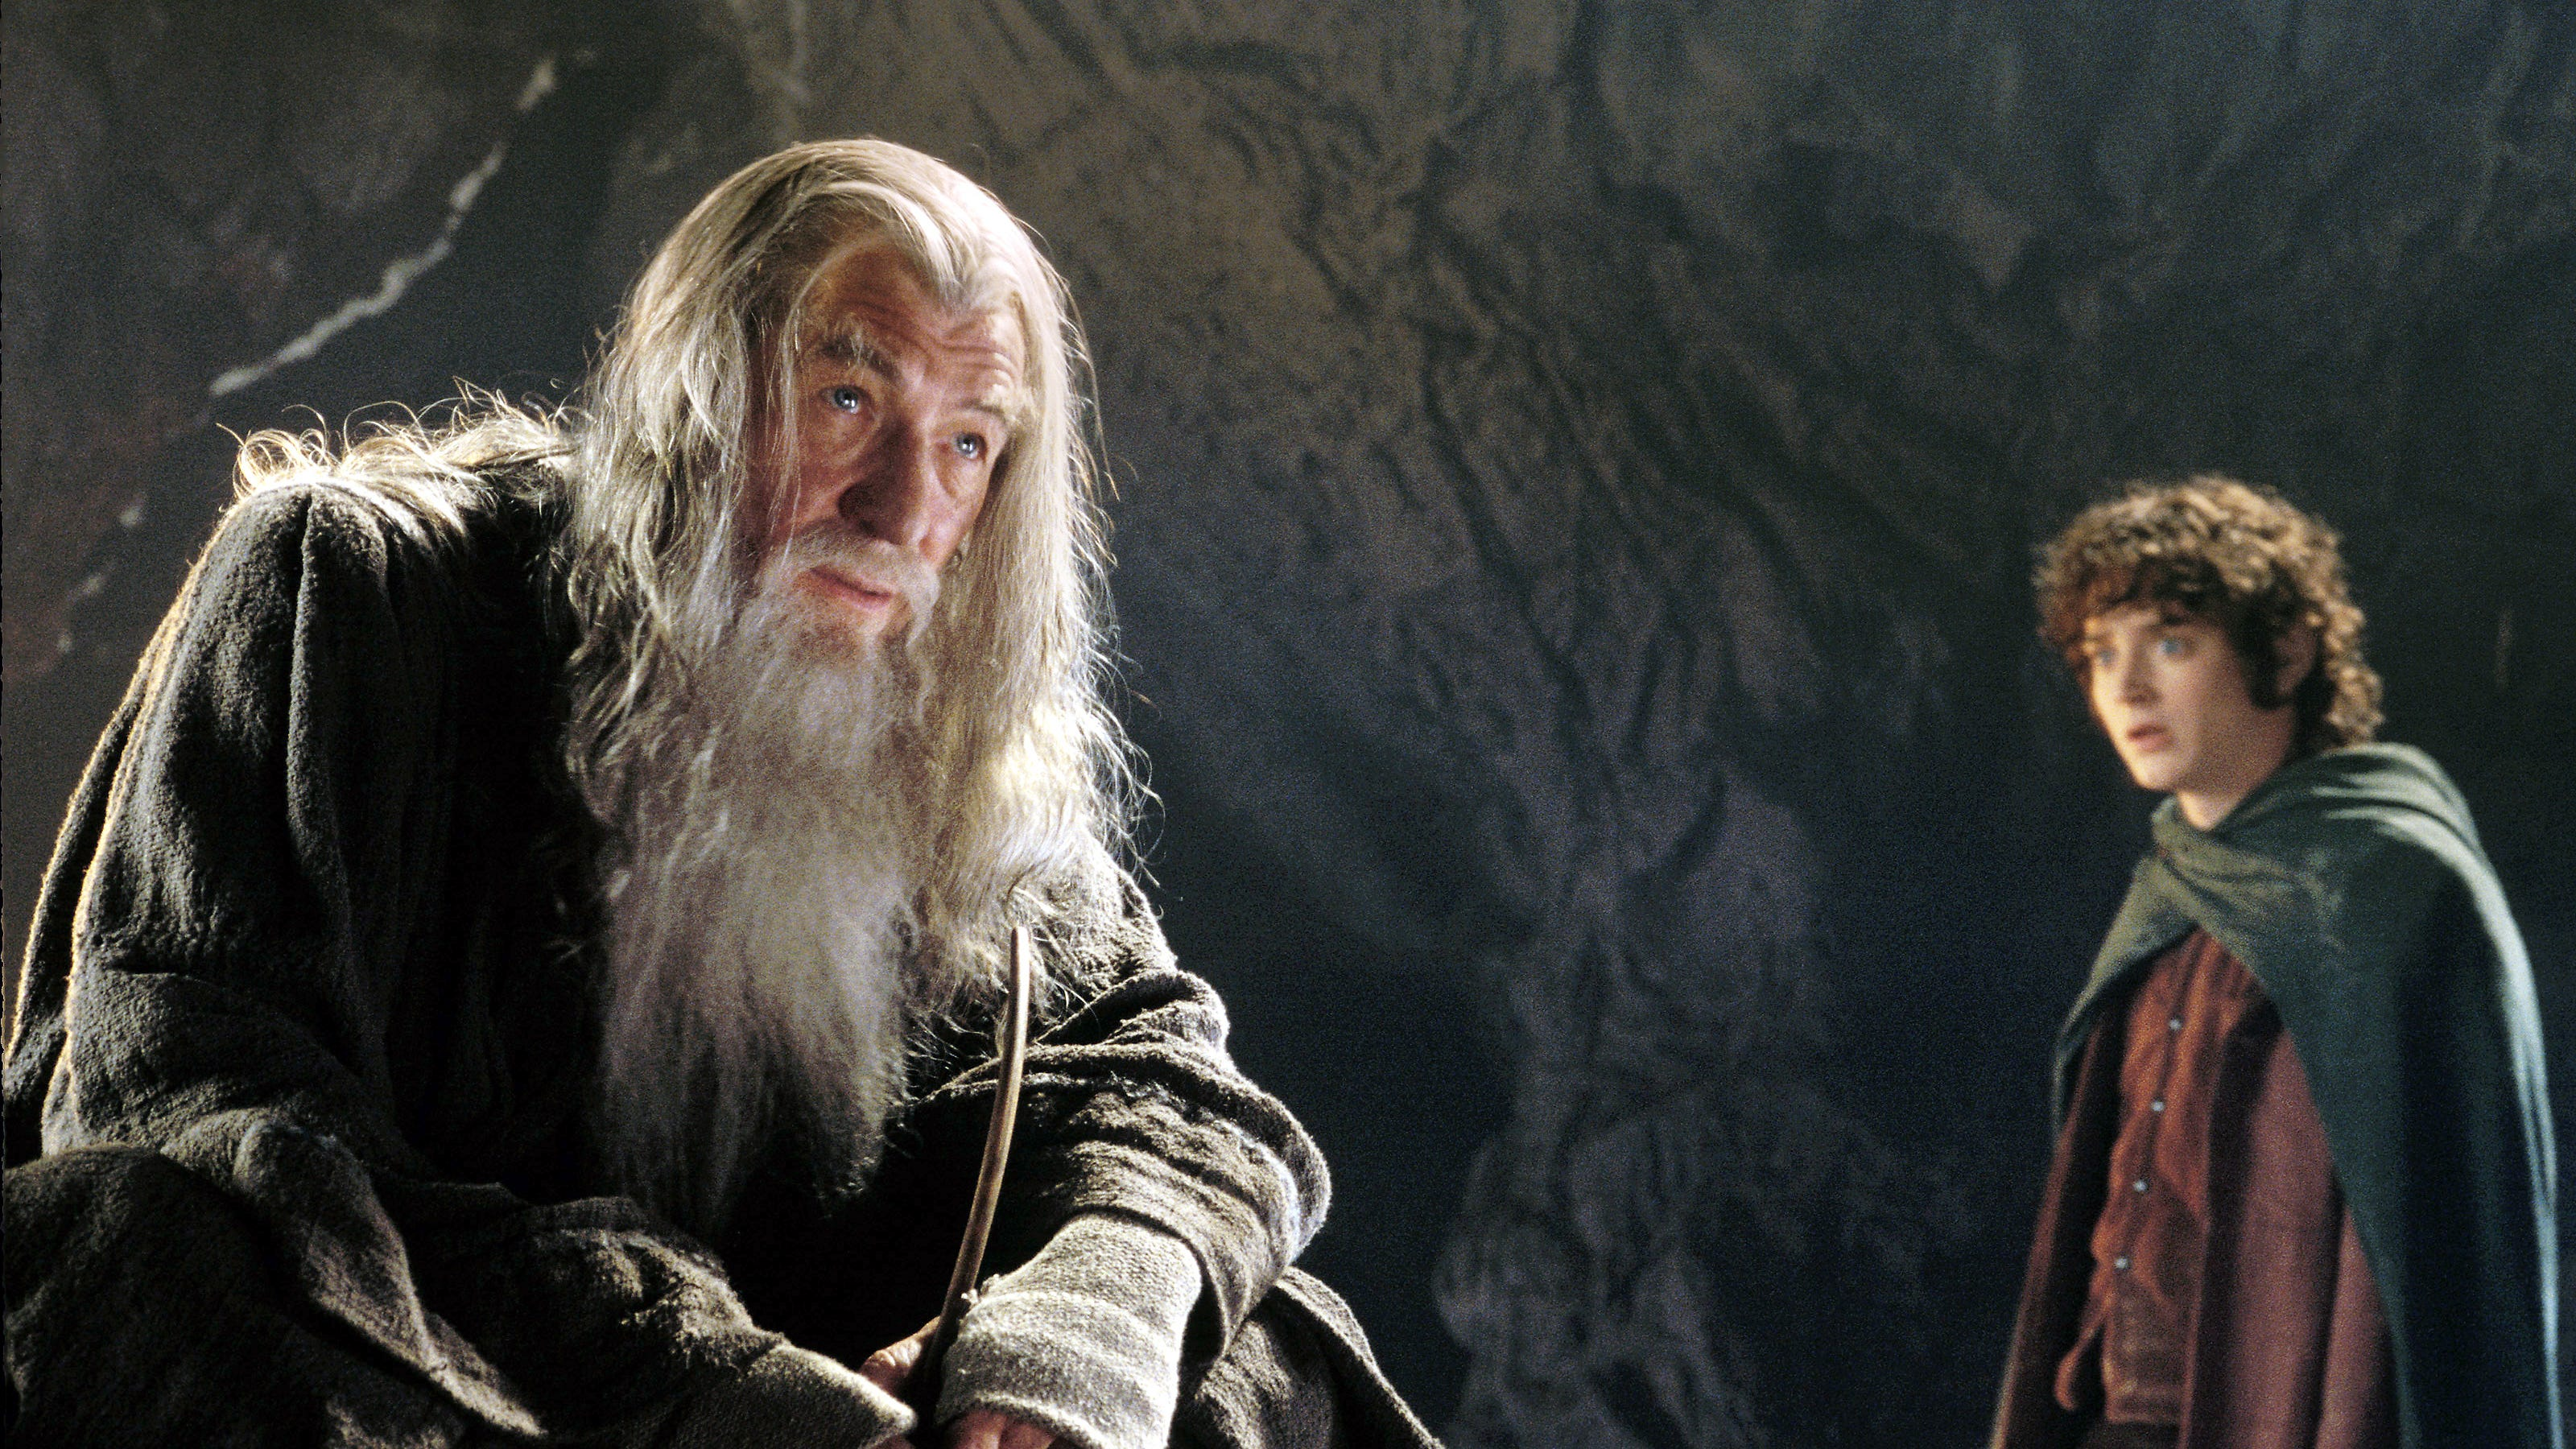 Lord of the Rings' Gandalf gives Hobbit fans academic advice